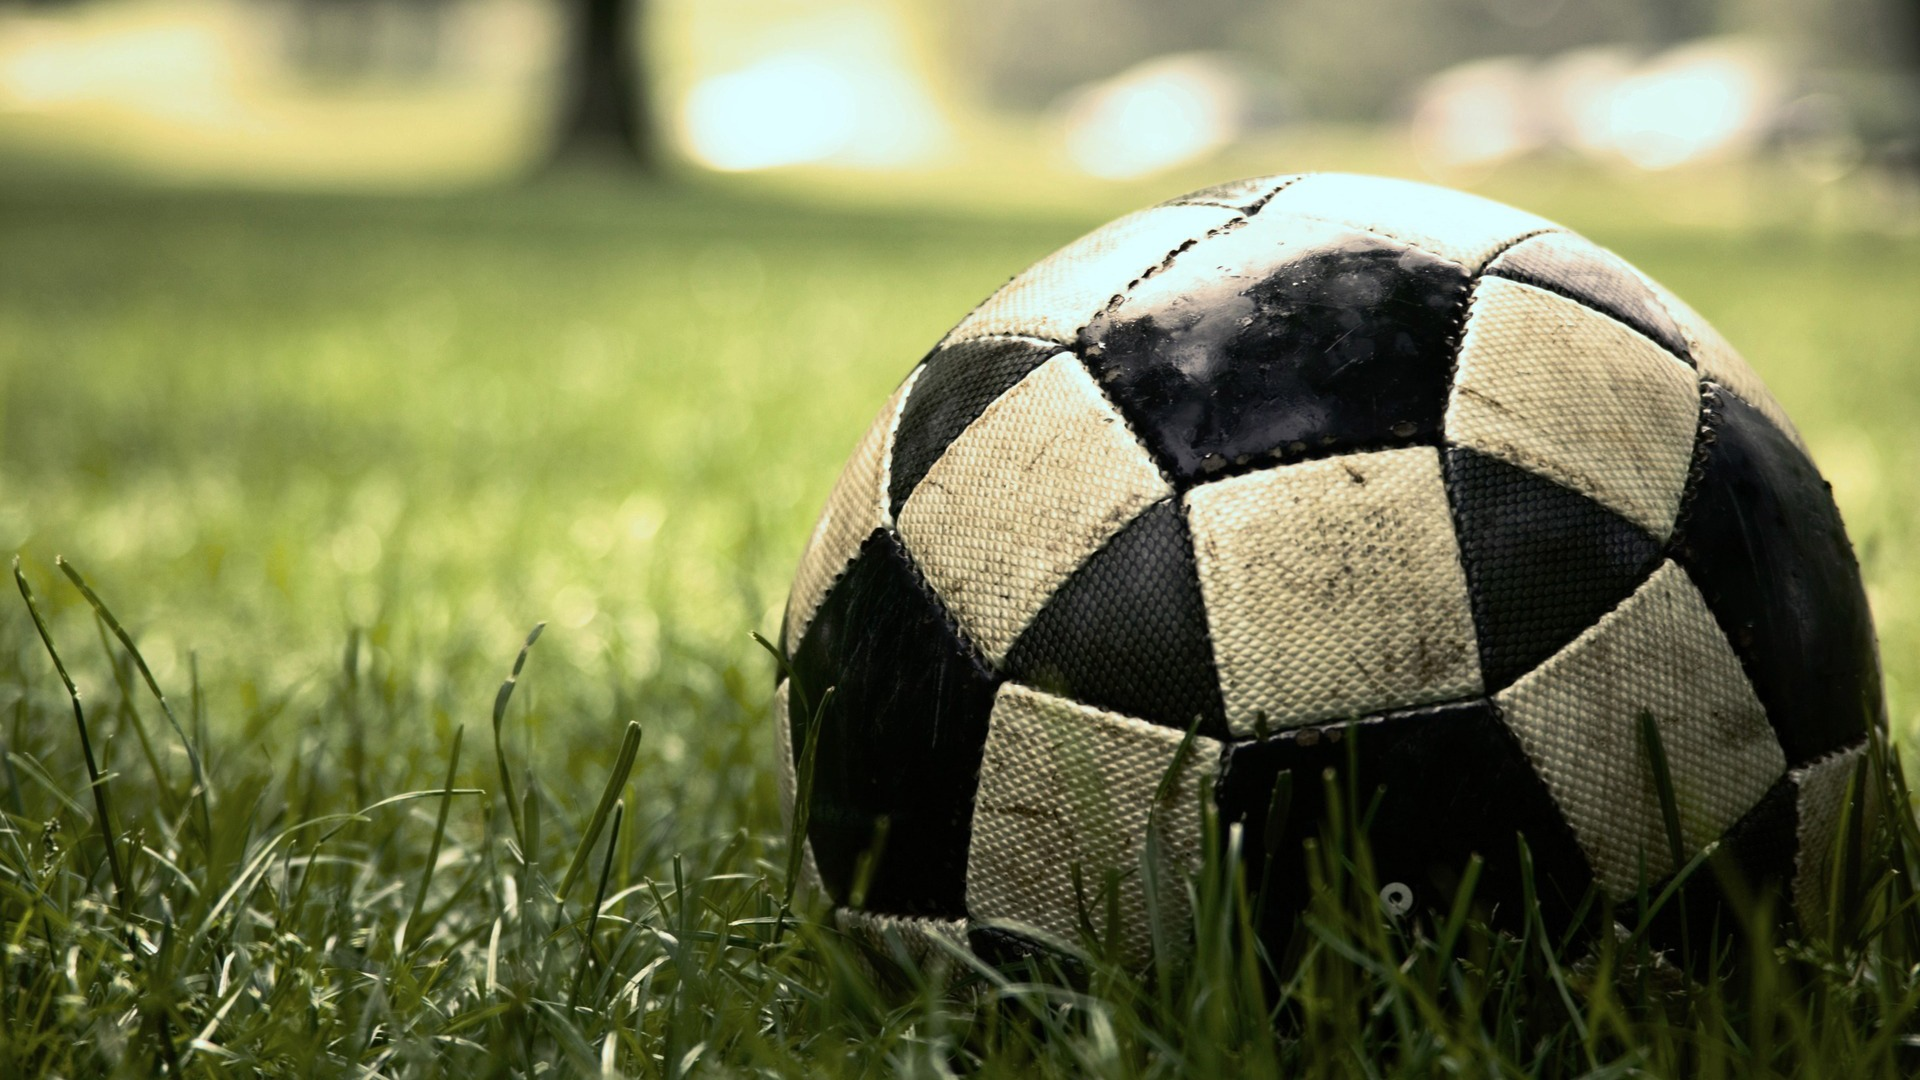 Soccer Ball Wallpaper: HD Sports Wallpapers 1080p